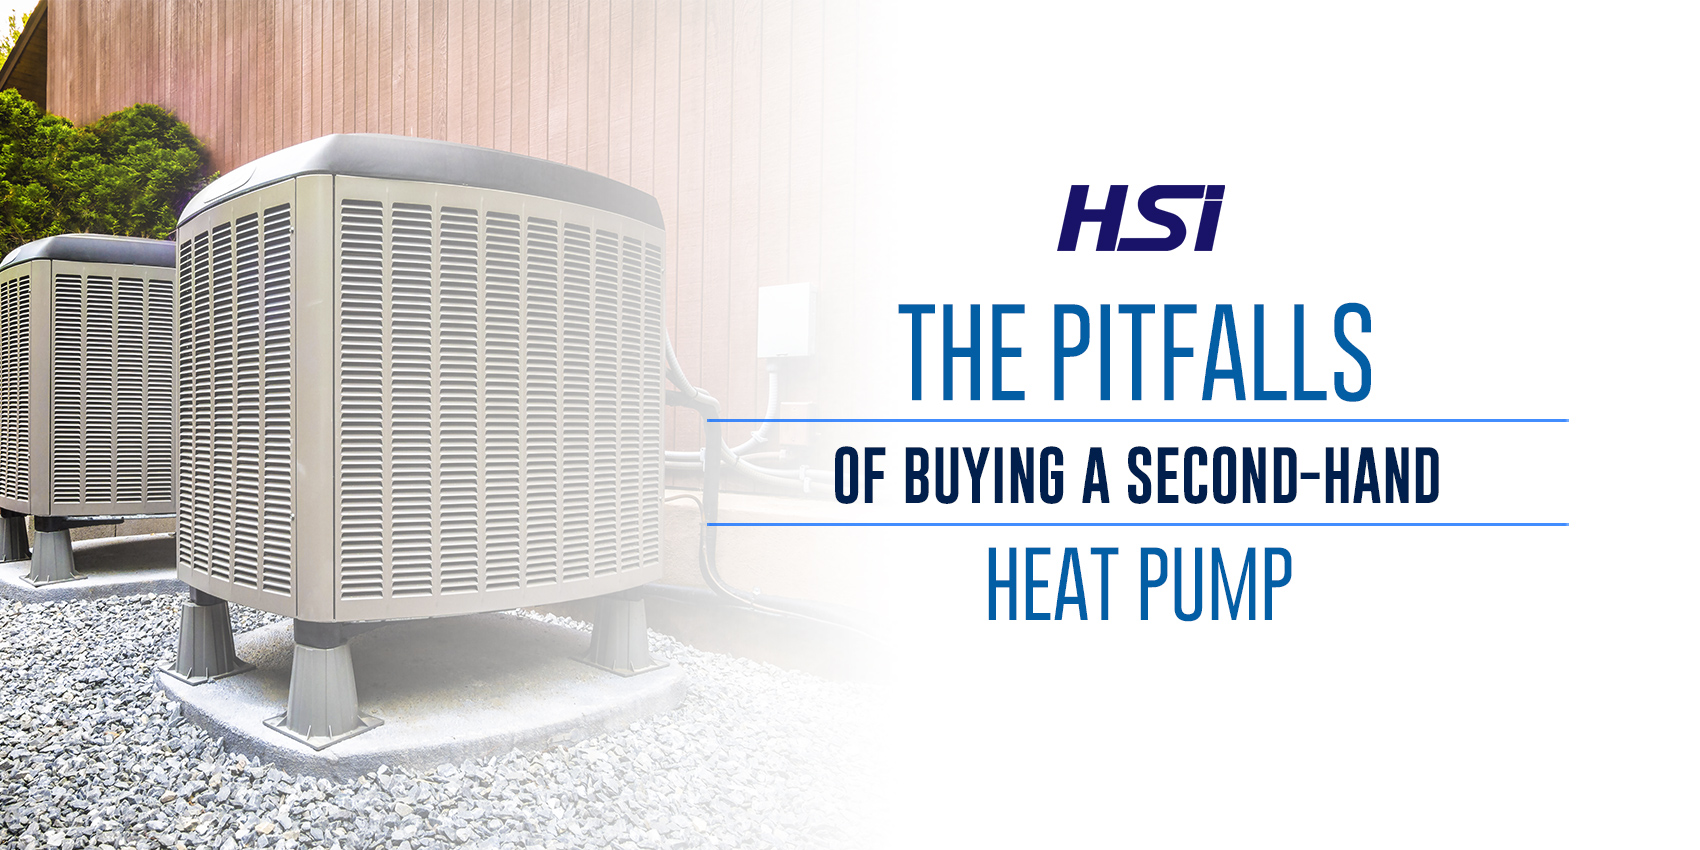 The Pitfalls of Buying a Second-Hand Heat Pump